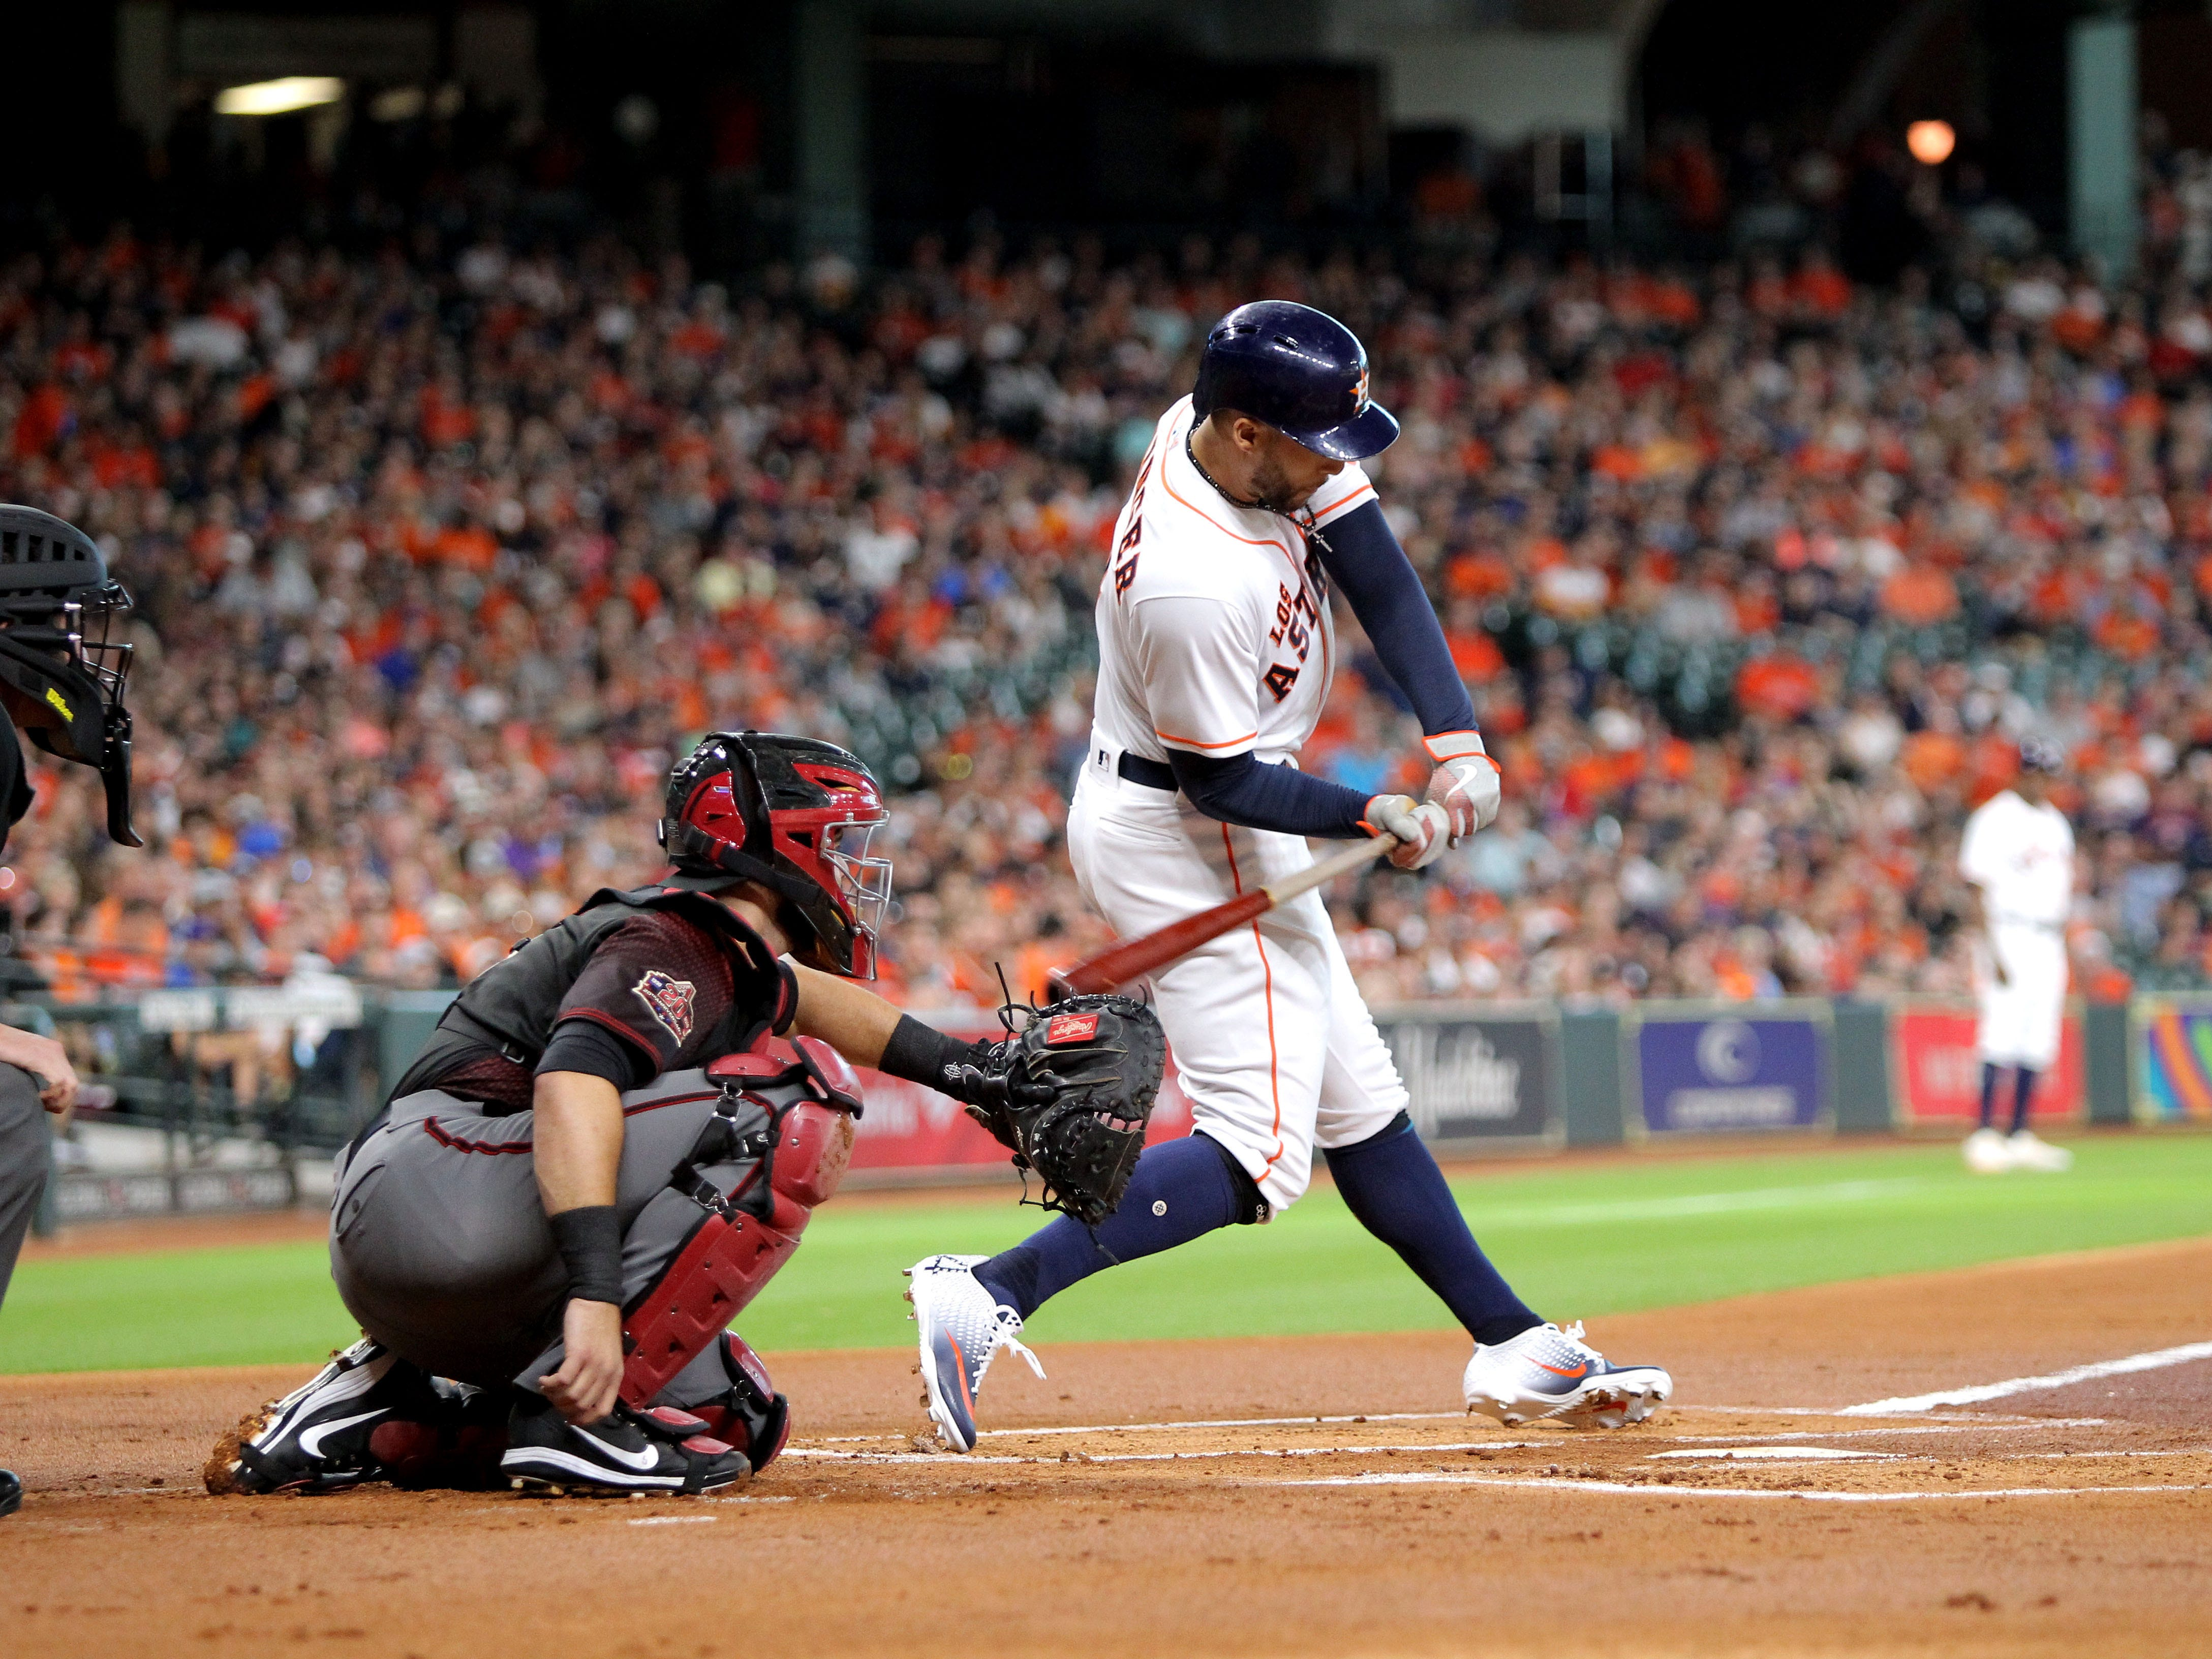 Sep 15, 2018; Houston, TX, USA; Houston Astros center fielder George Springer (4) hits a single to left field against the Arizona Diamondbacks during the first inning at Minute Maid Park. Mandatory Credit: Erik Williams-USA TODAY Sports